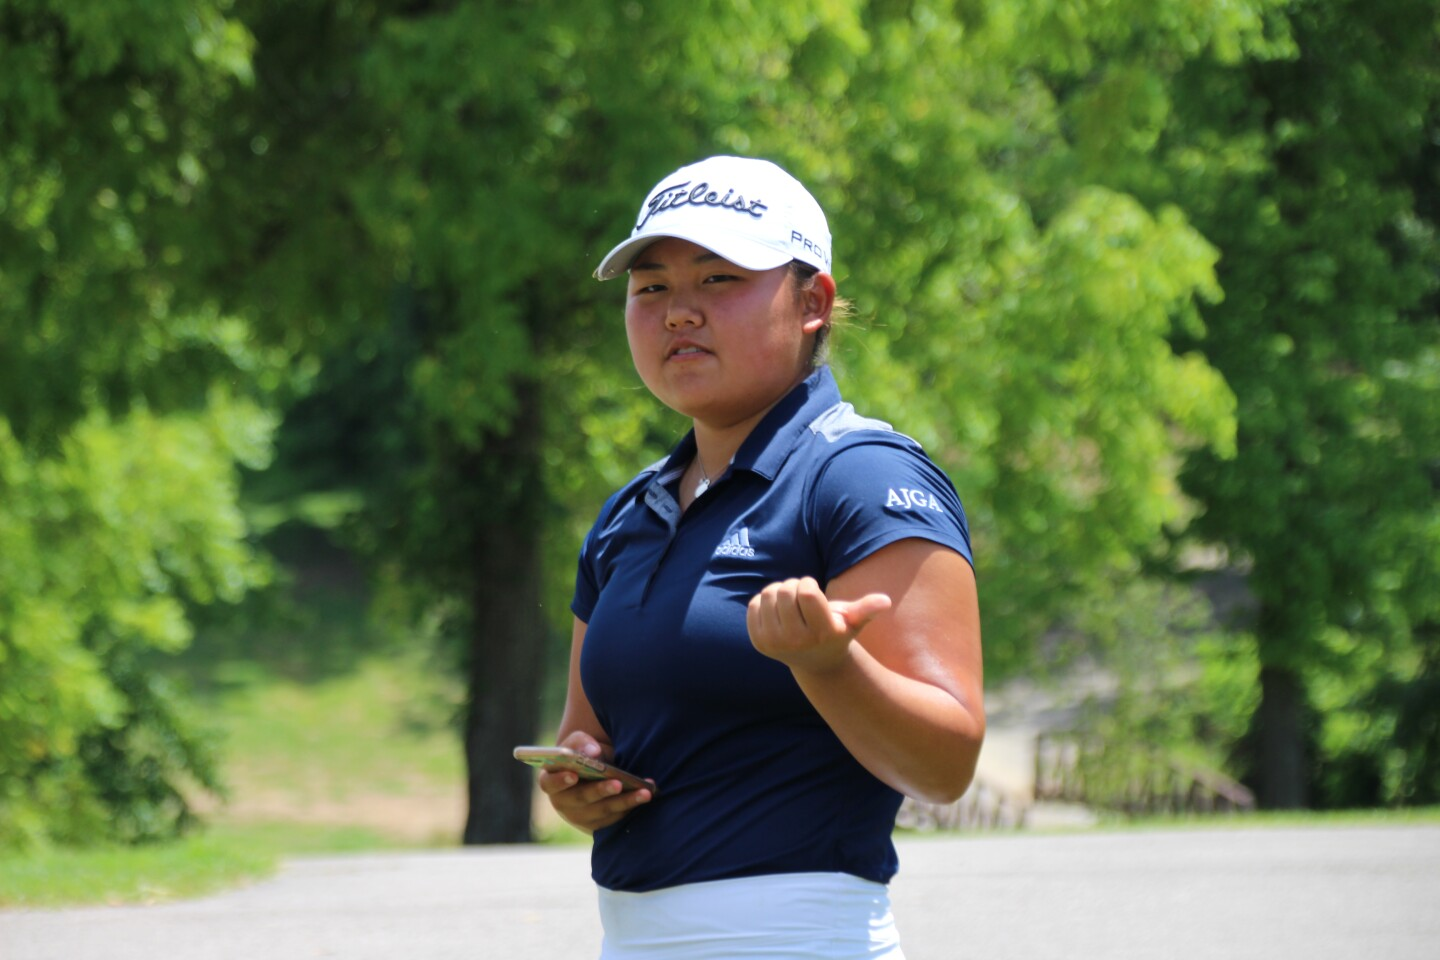 Lynn Lim giving speech -2020- UHY St. Louis Junior presented by Family Golf and Learning Center.JPG